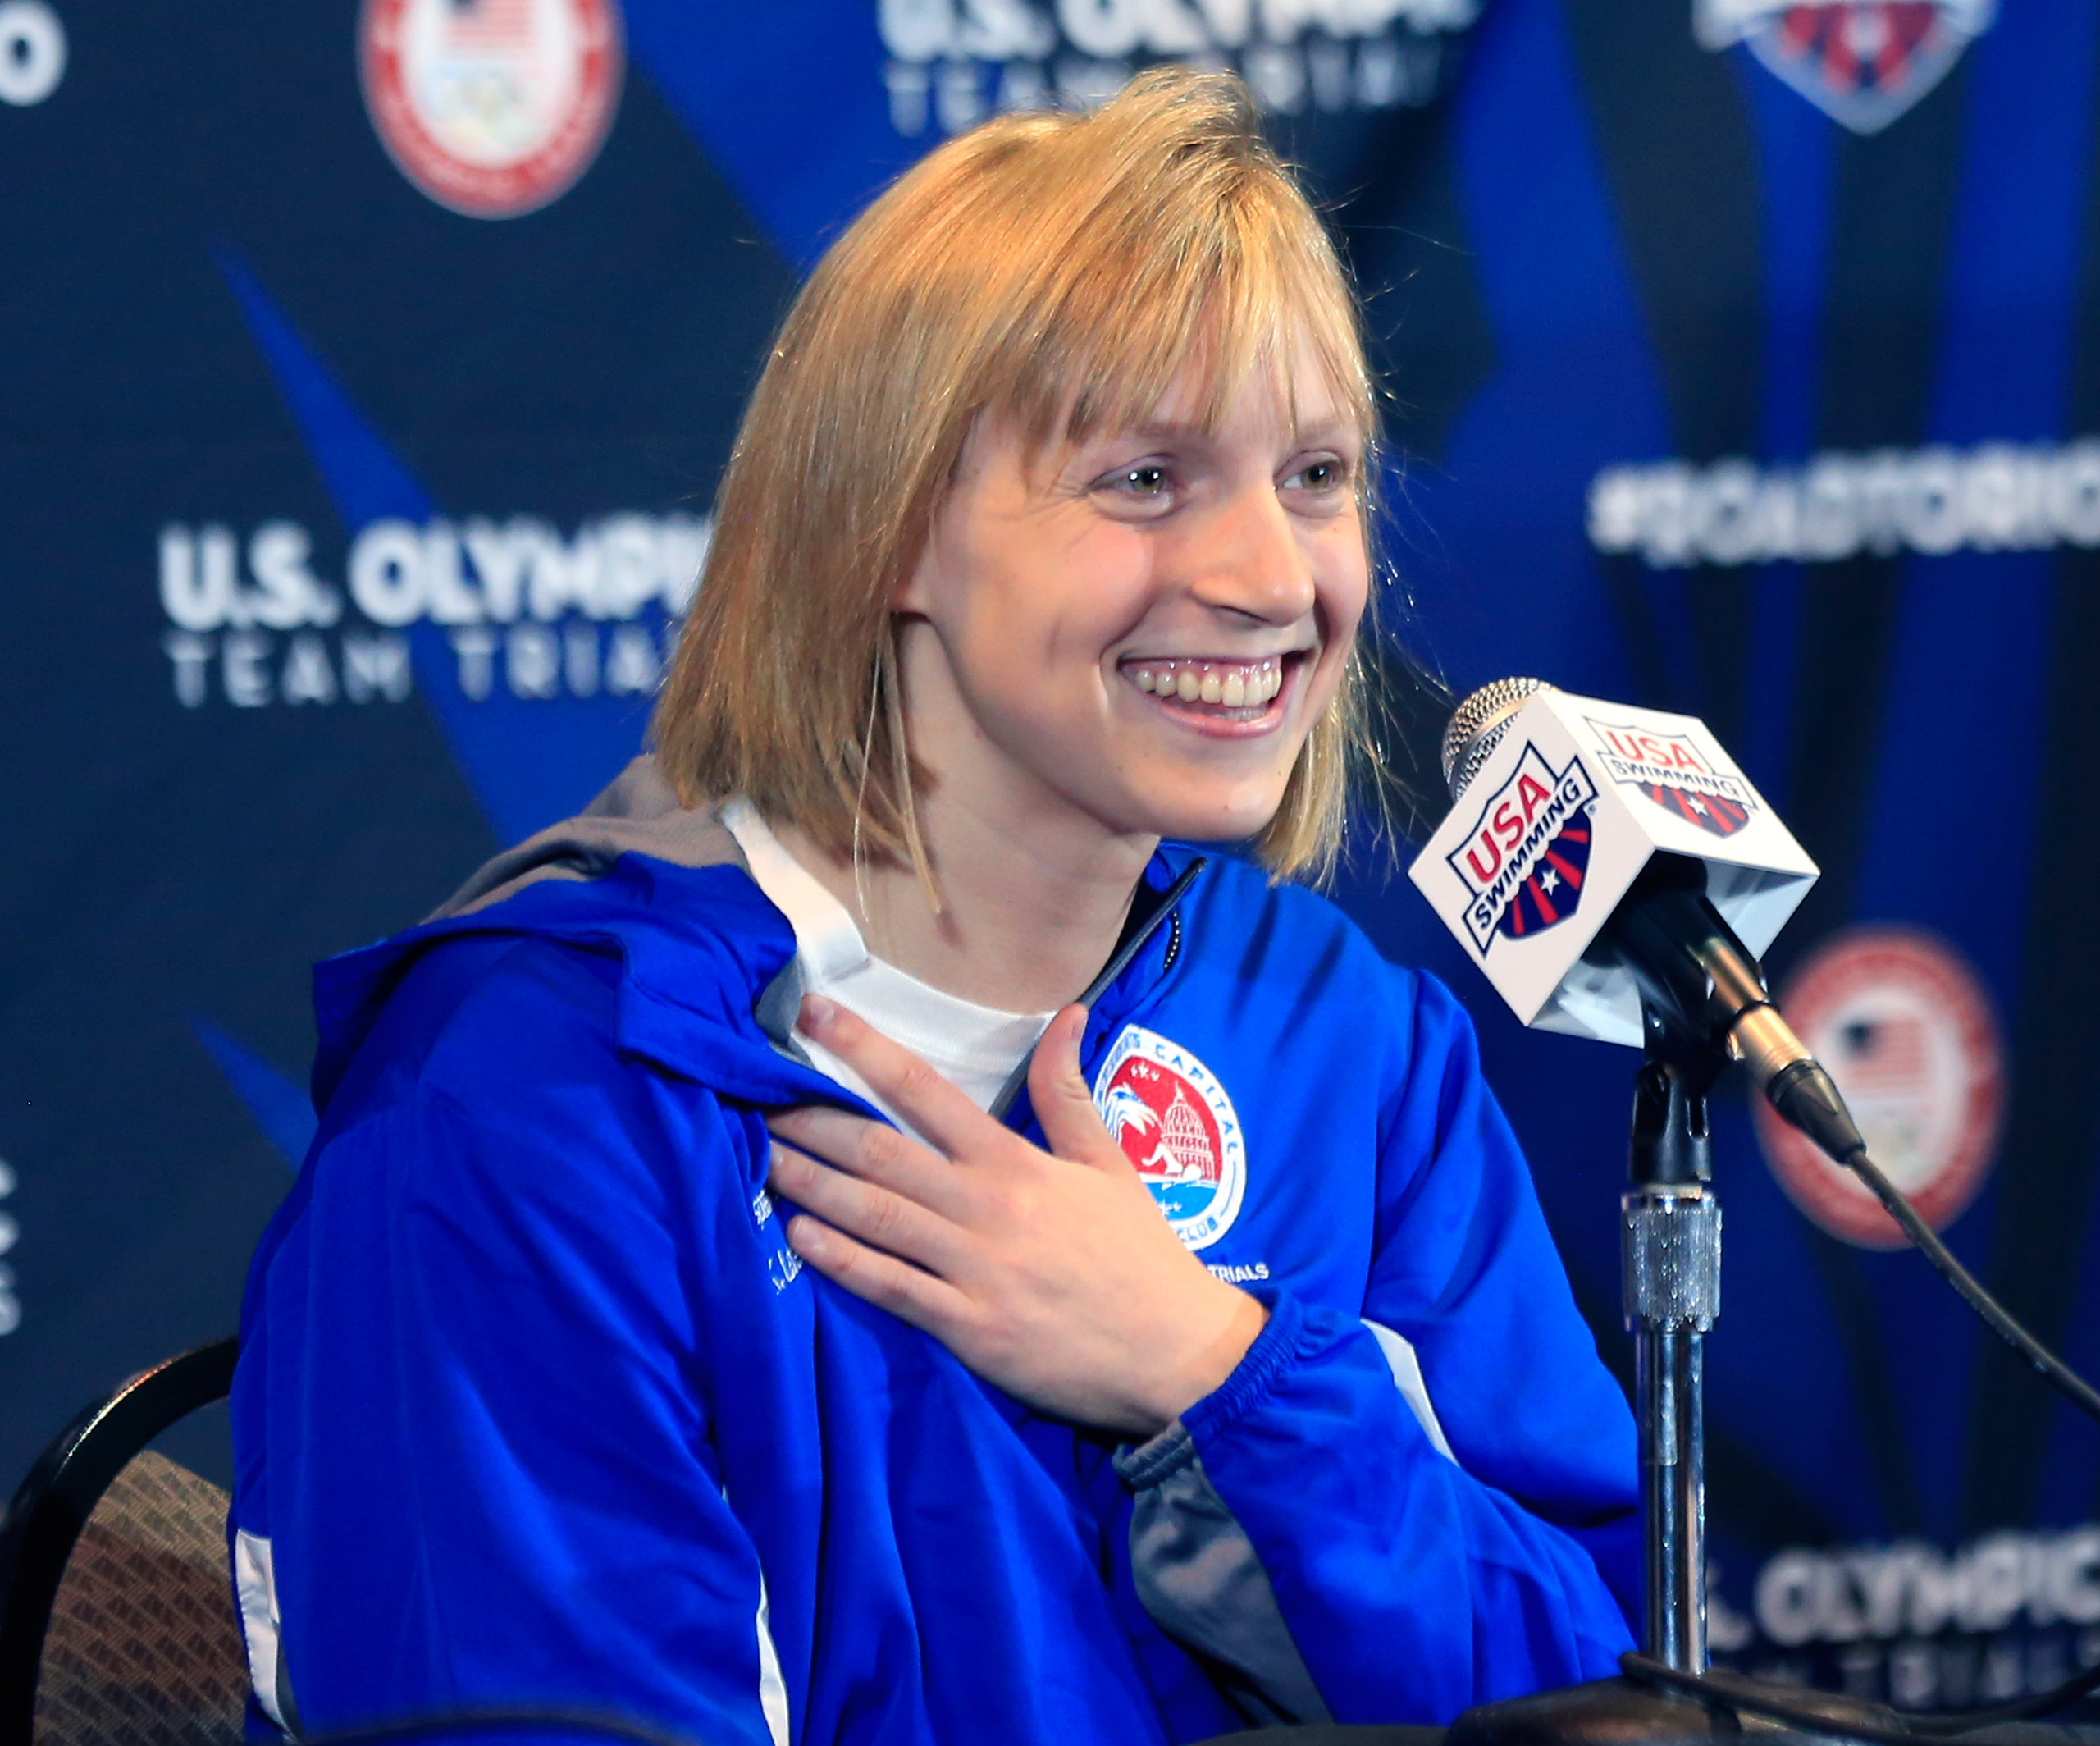 Olympic gold medalist Katie Ledecky speaks during a news conference at U.S. Olympic team trials in Omaha, Neb. on June 24, 2016.